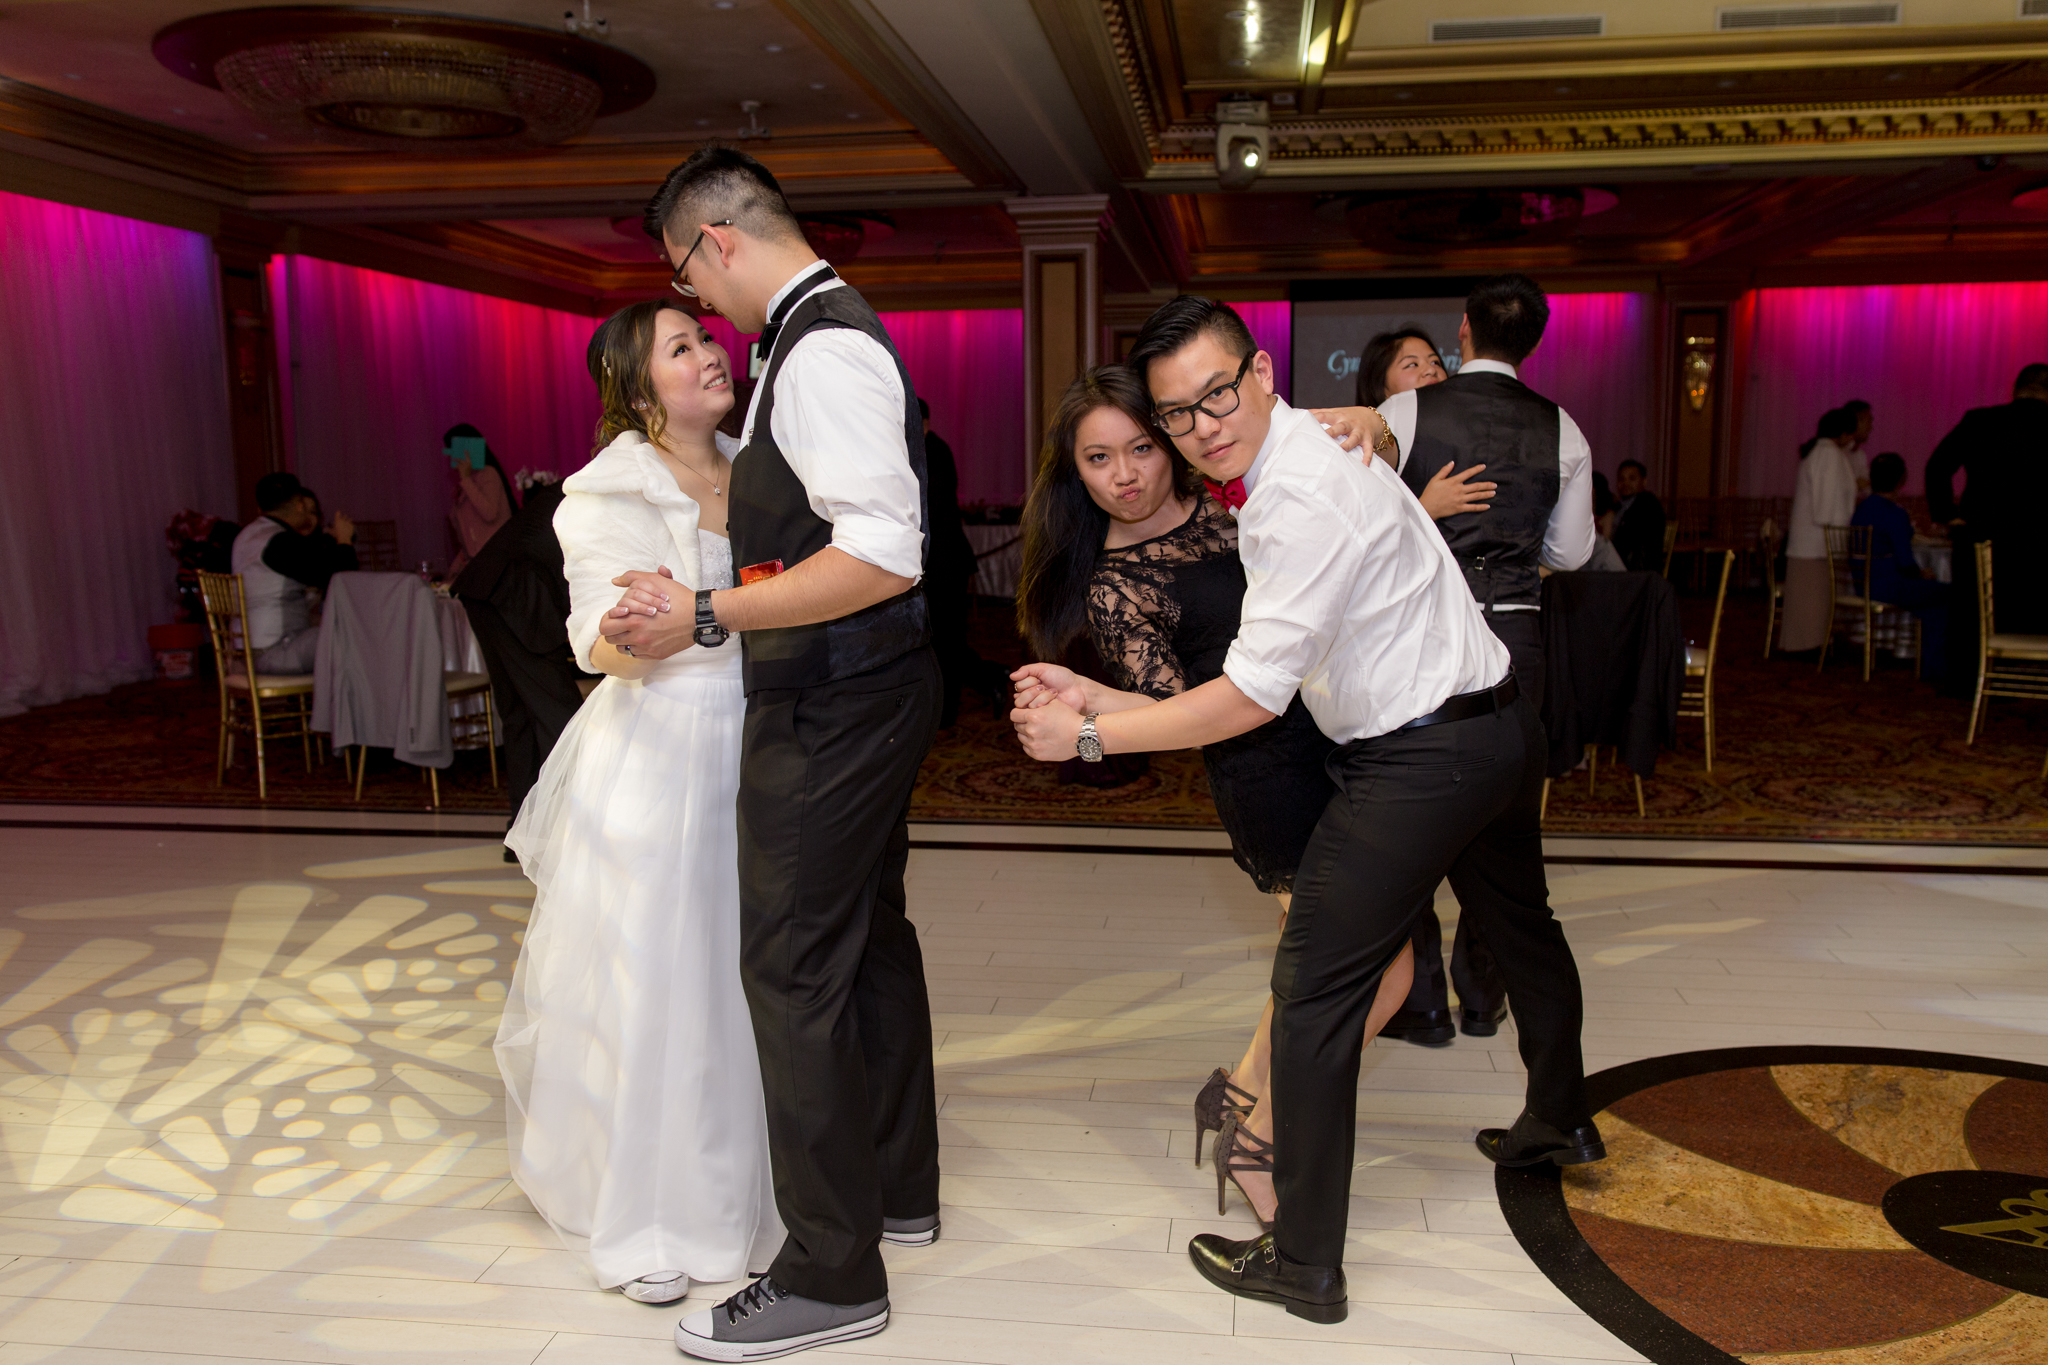 rl-Reception-chris+cynthia-435.jpg